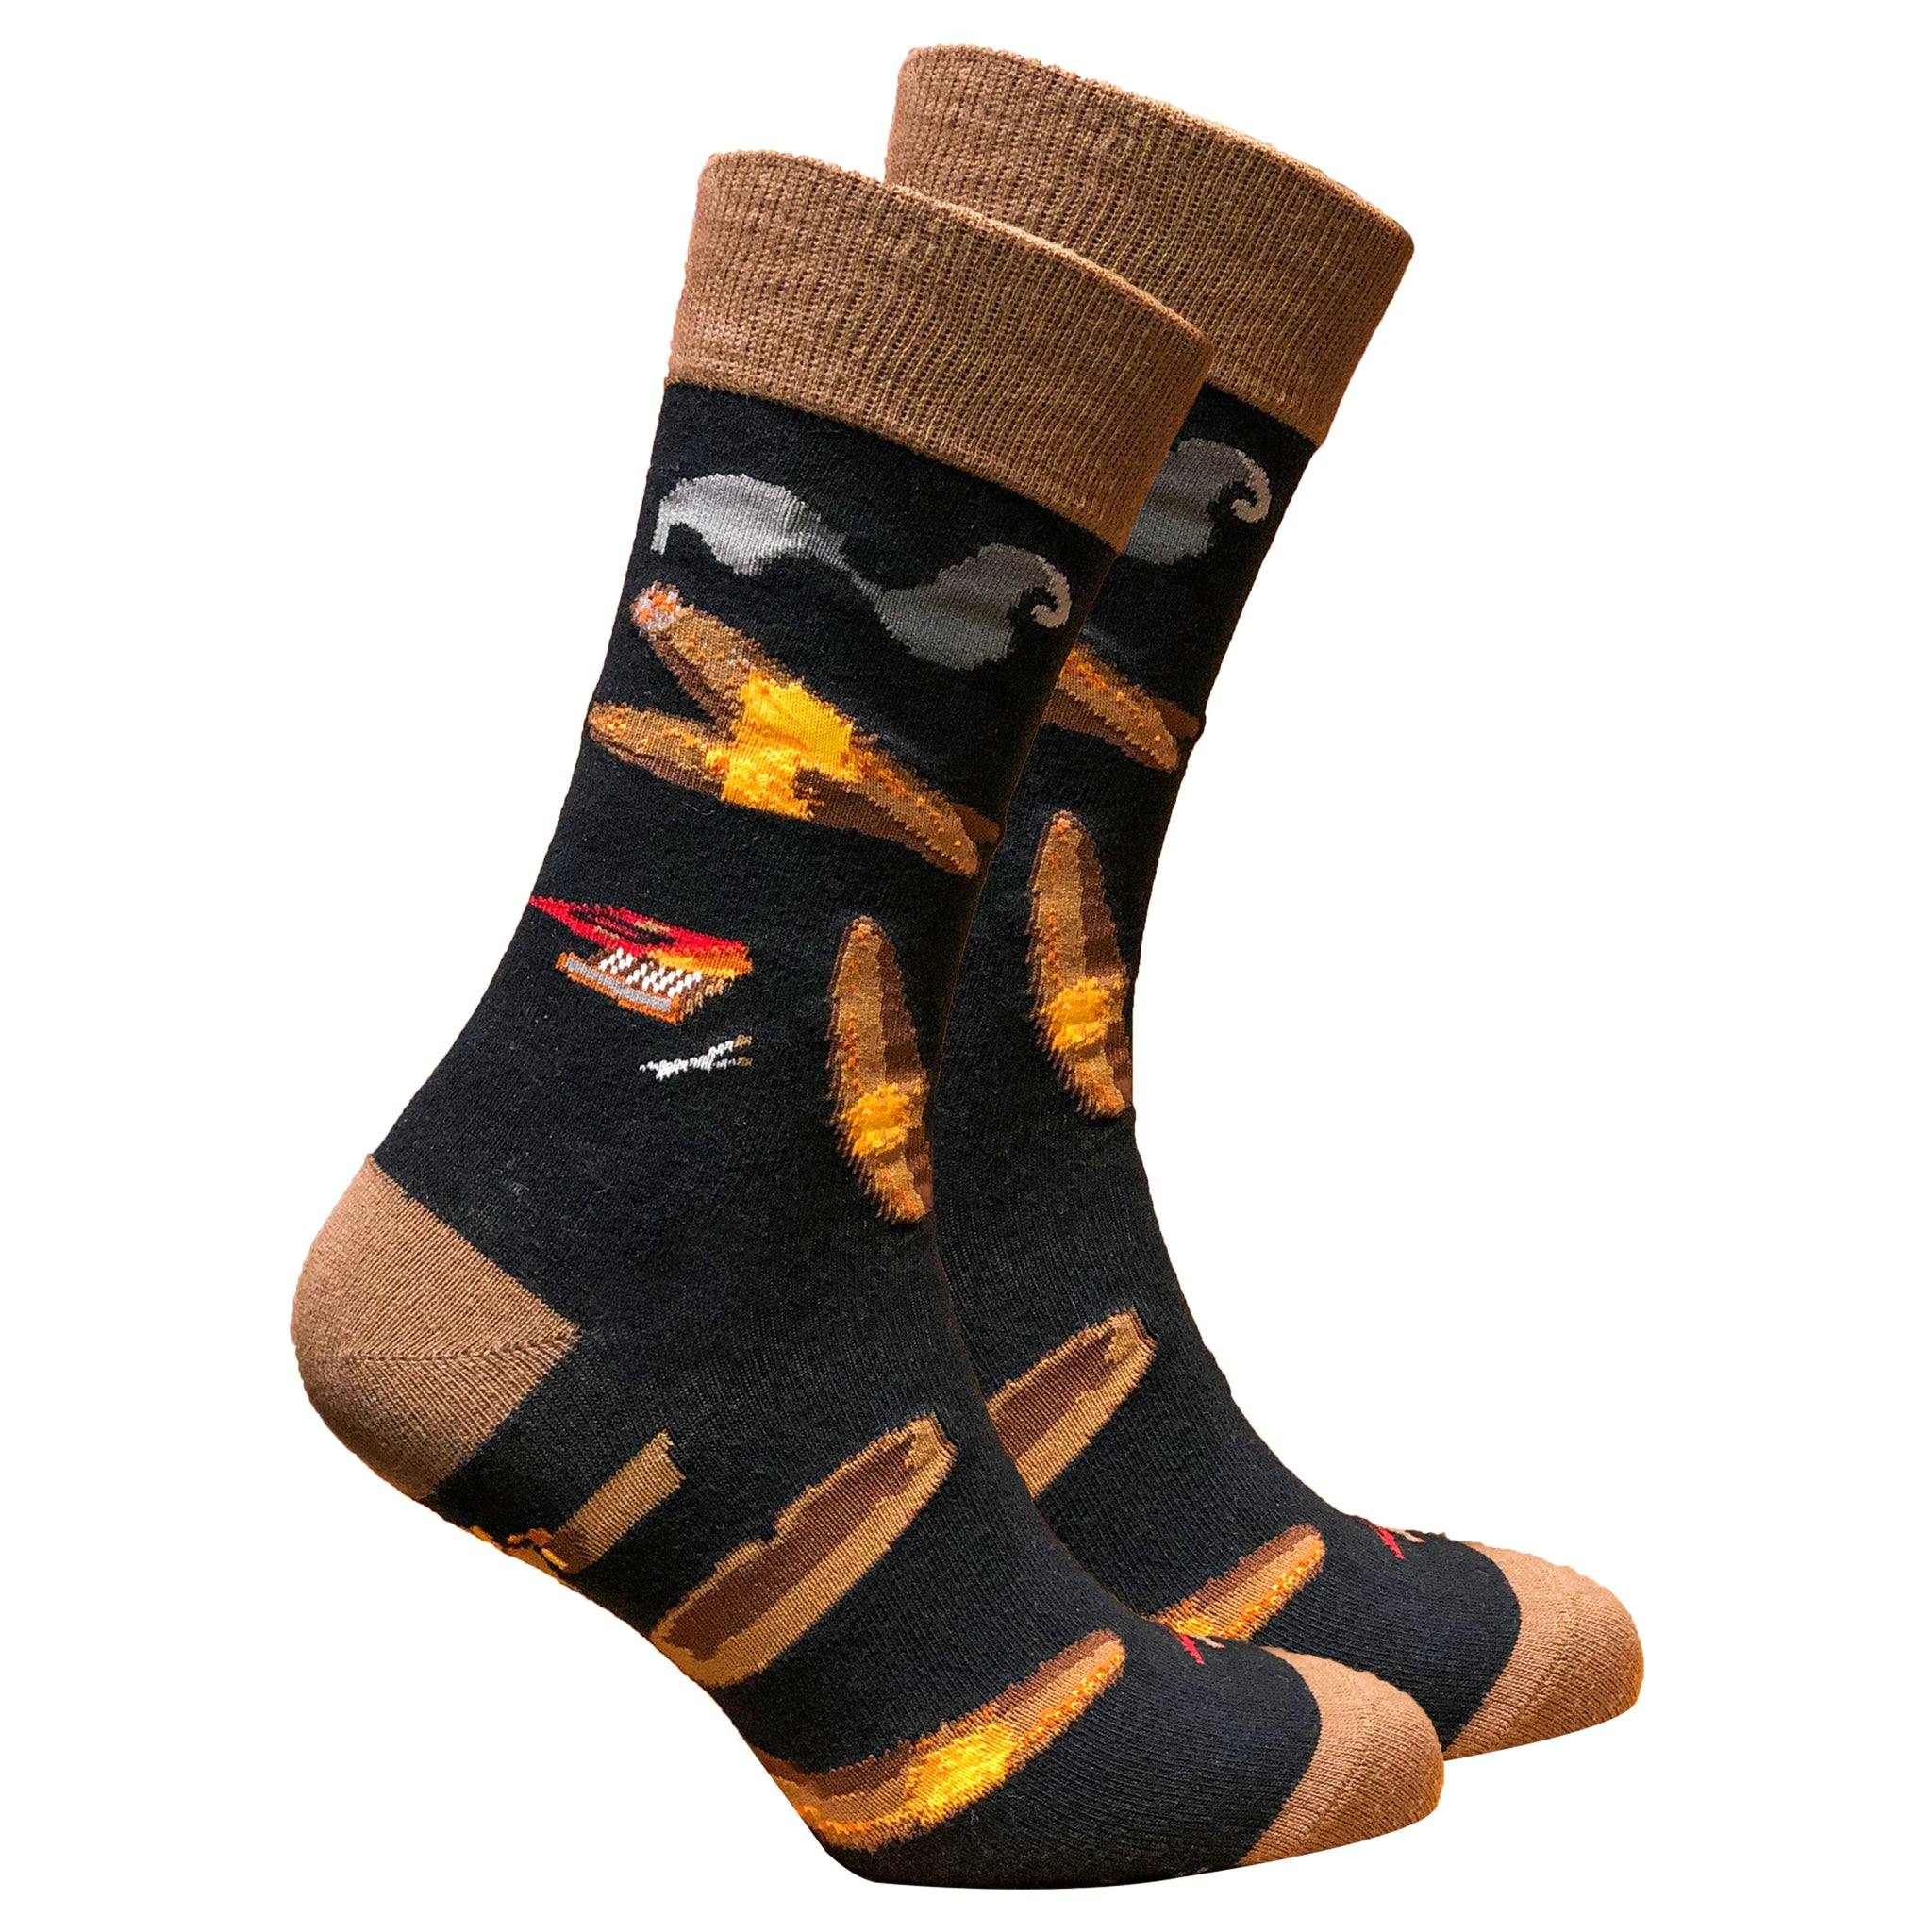 Men's Cigar Socks